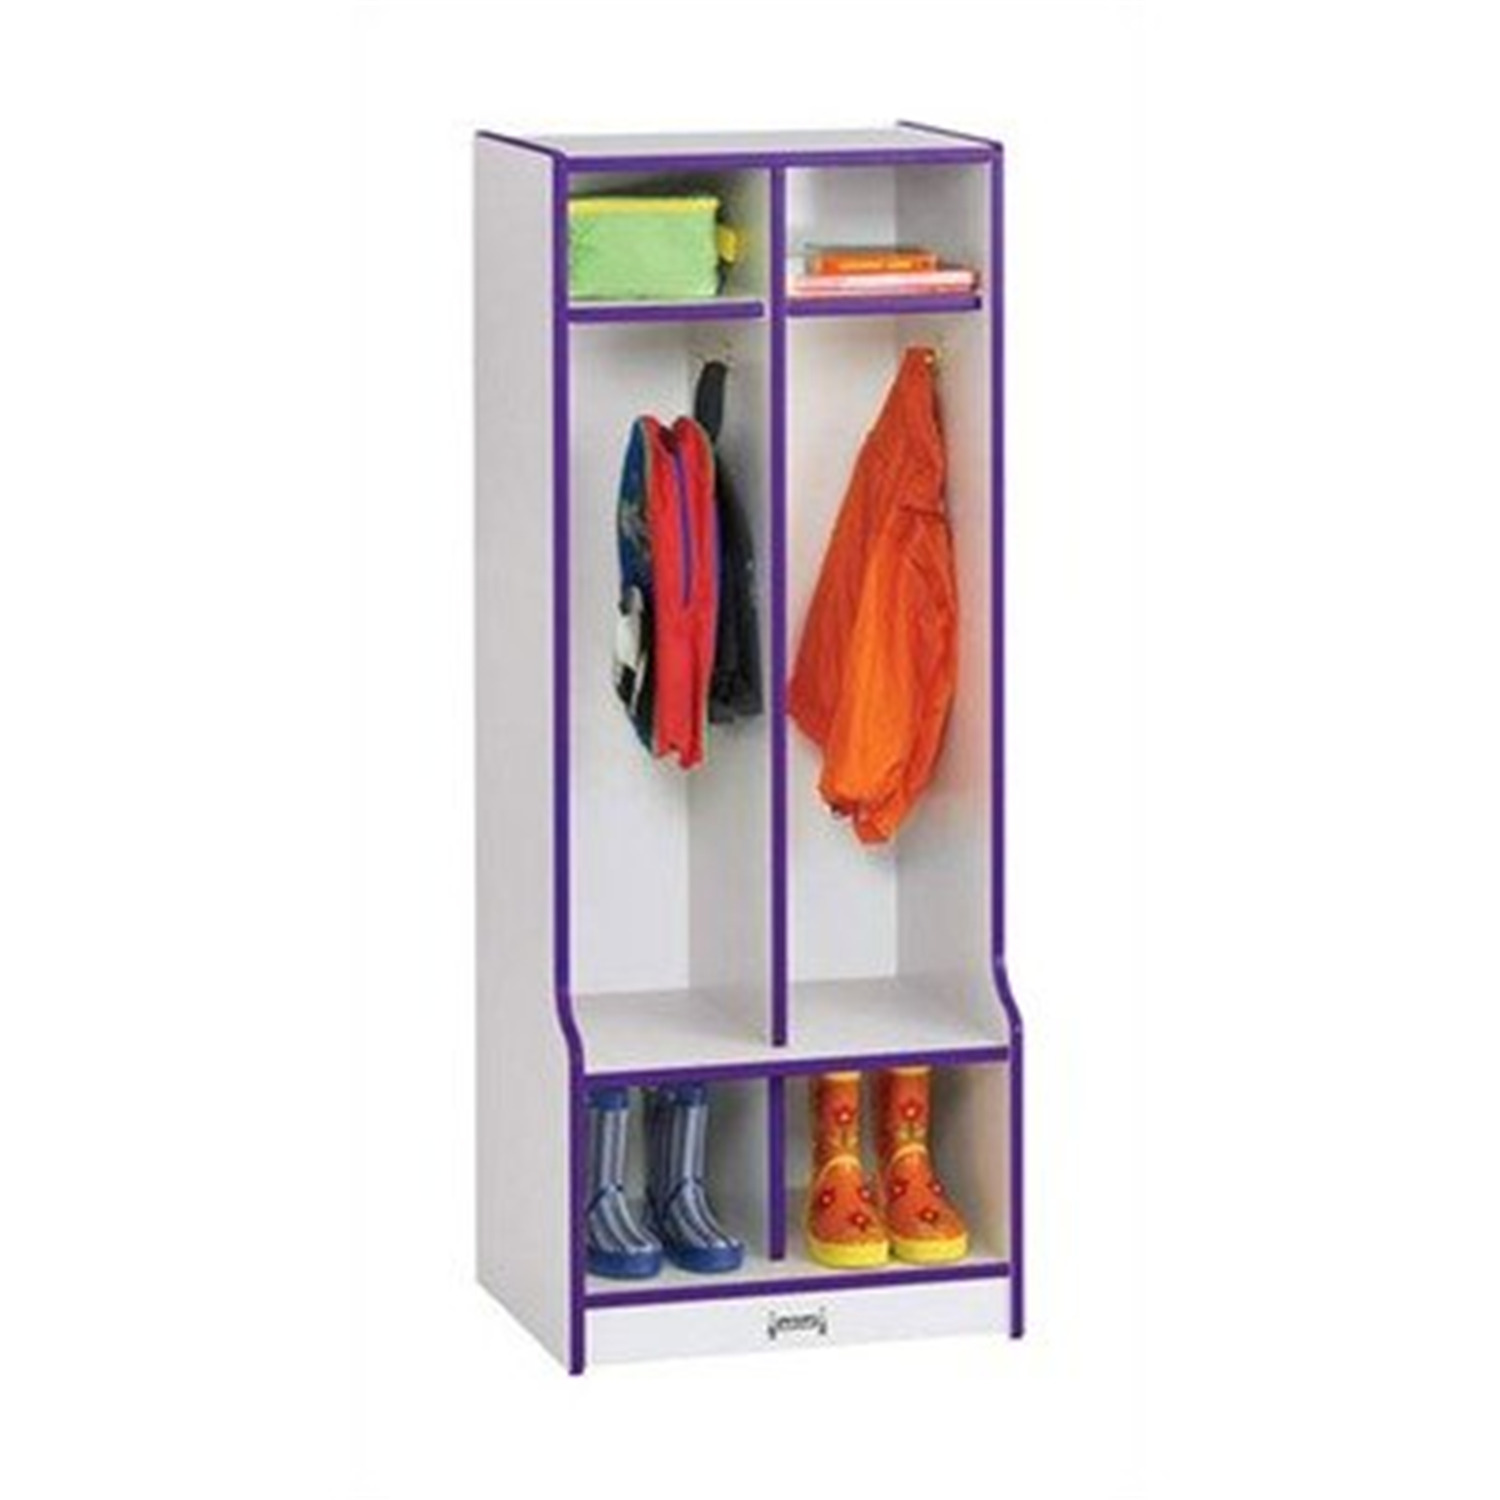 Double Locker W/step - 2 Sections - [4682JCWW008]